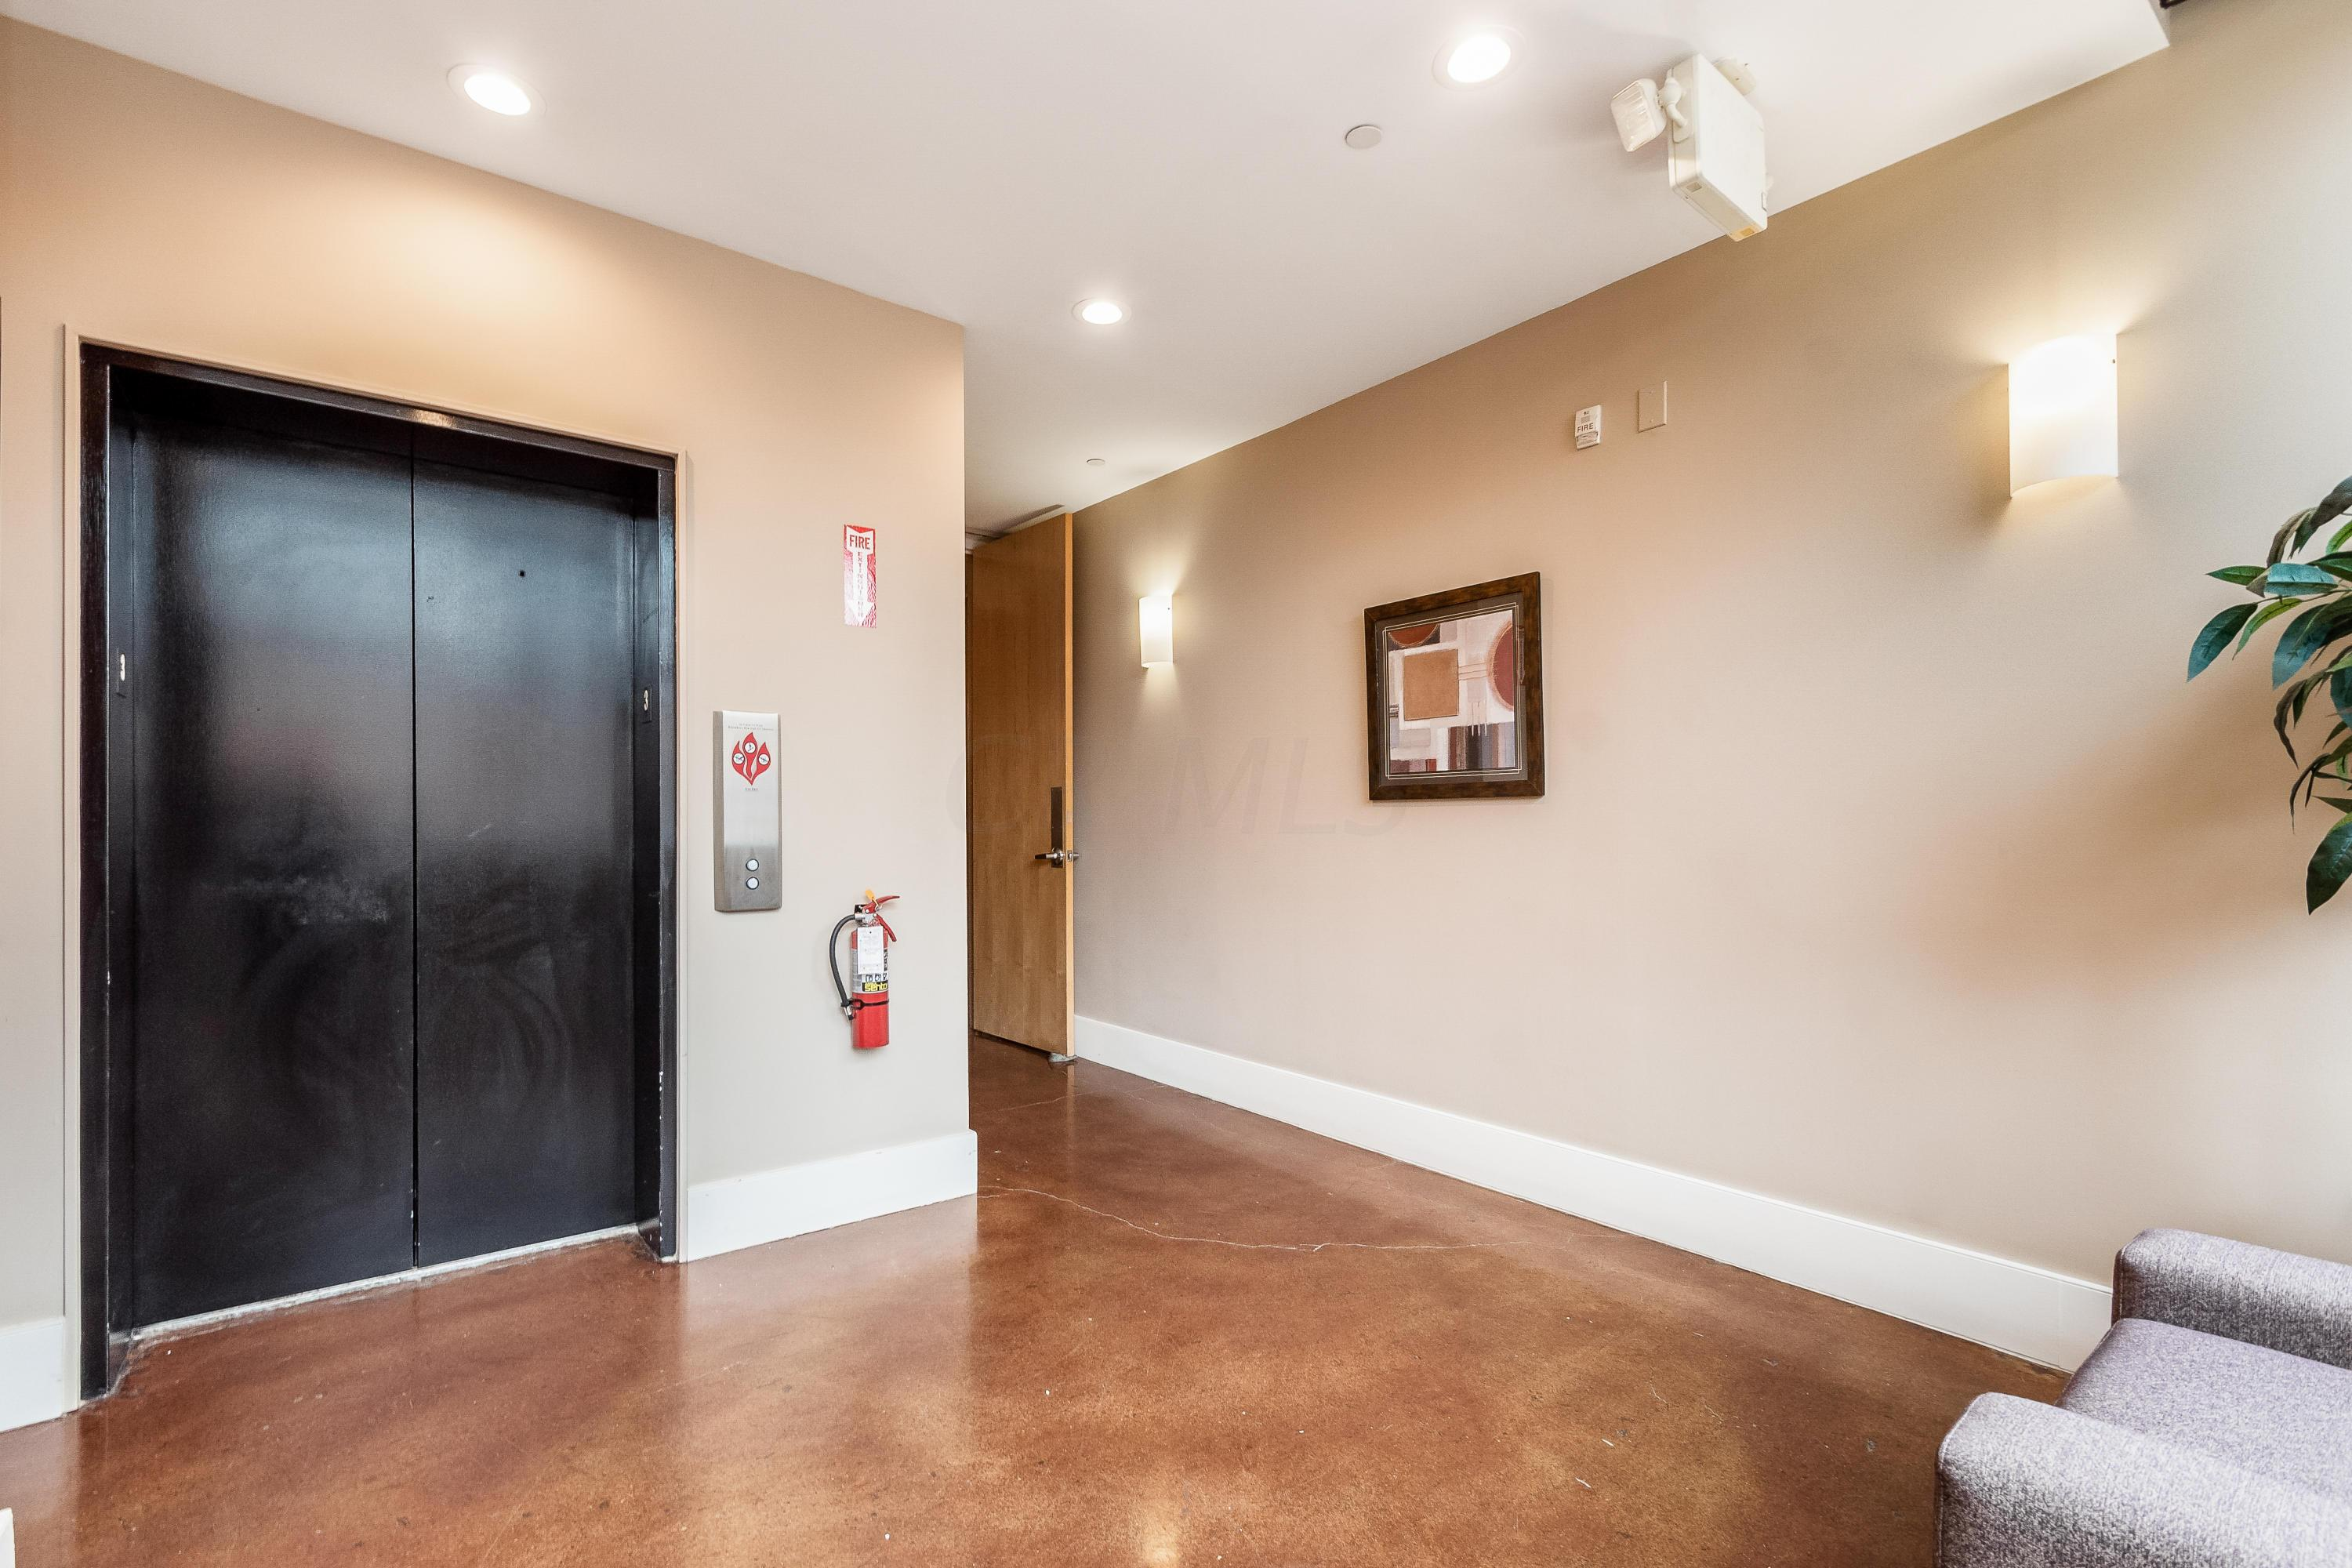 199 5th Street, Columbus, Ohio 43215, 2 Bedrooms Bedrooms, ,2 BathroomsBathrooms,Residential,For Sale,5th,220016845